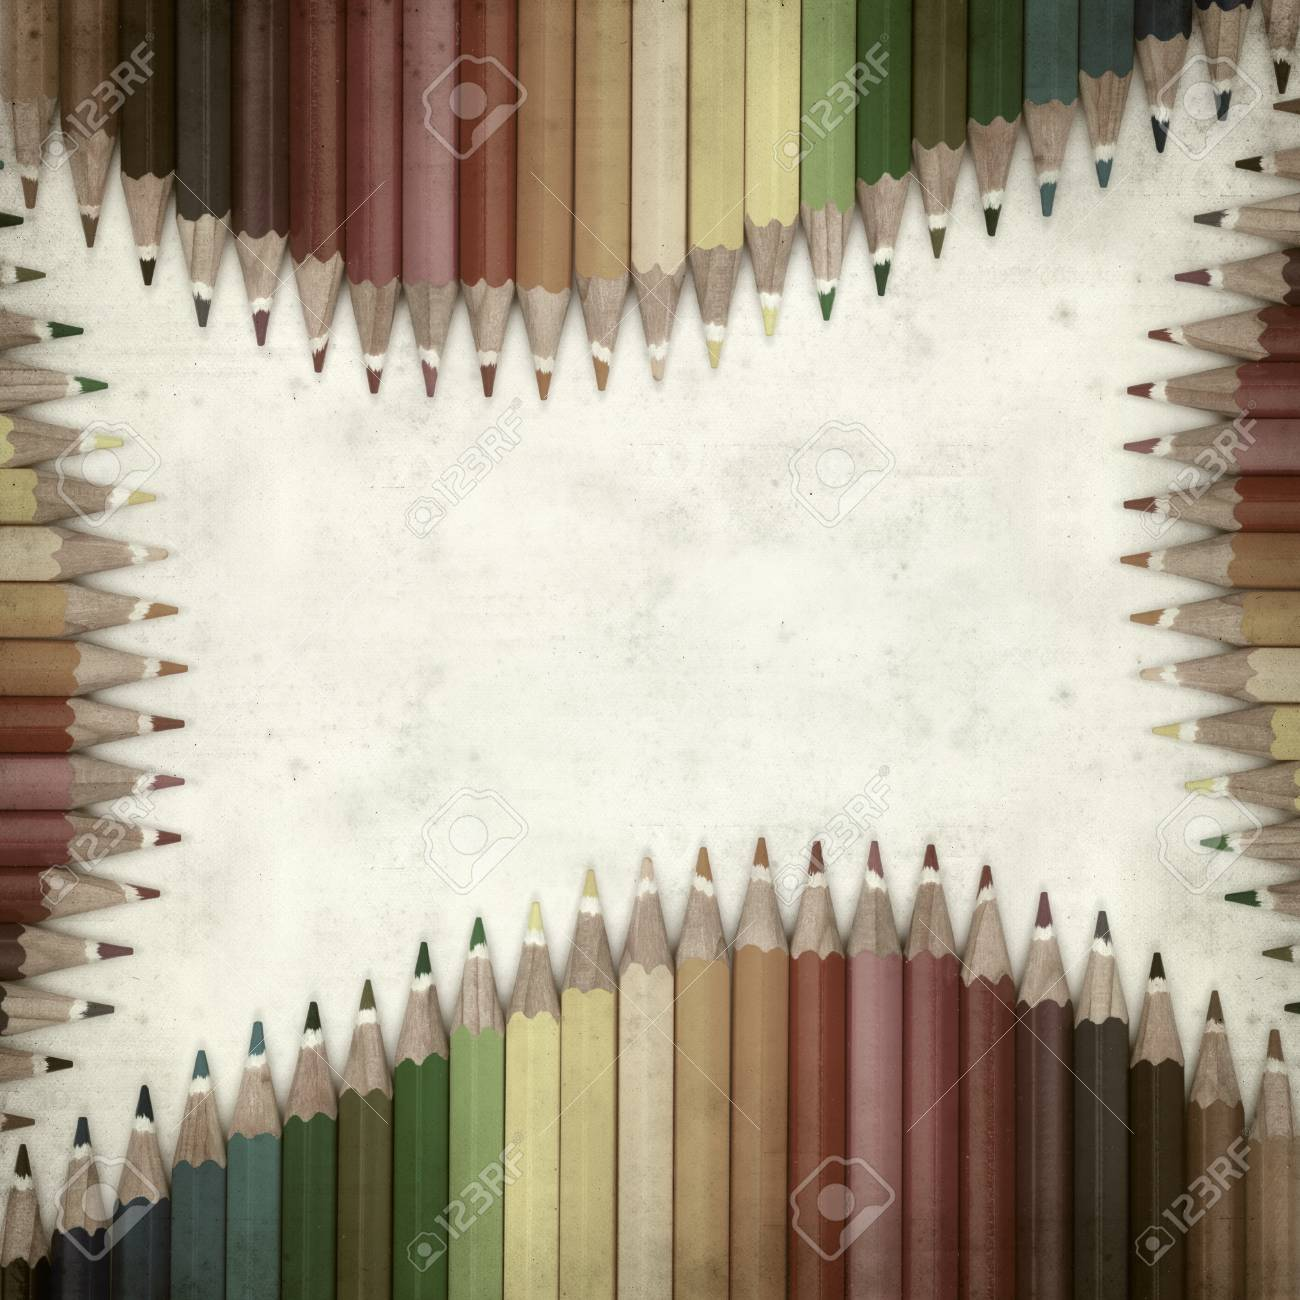 textured old paper background with color pencils Stock Photo - 25377030